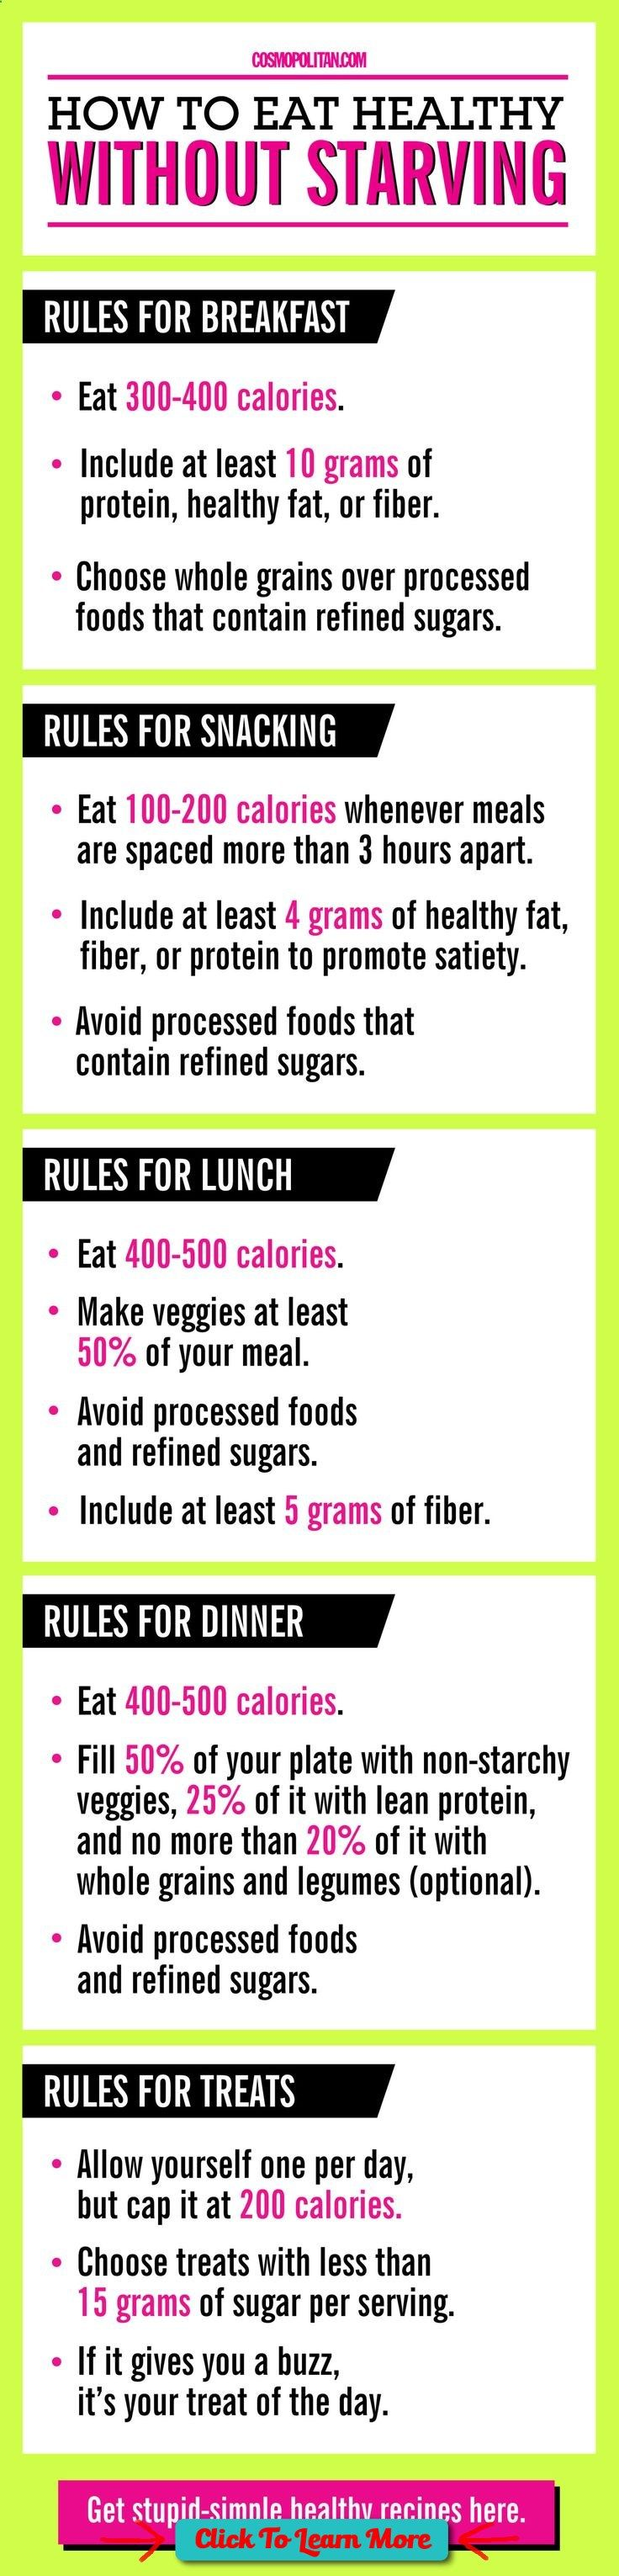 These clean eating tips are perfect for the beginner, or if you've fallen off track. Use an app like My Fitness Pal if you want to track your macros/calories (scheduled via www.tailwindapp.com) #health #fitness #weightloss #healthyrecipes #weightlossrecip | https://lomejordelaweb.es/